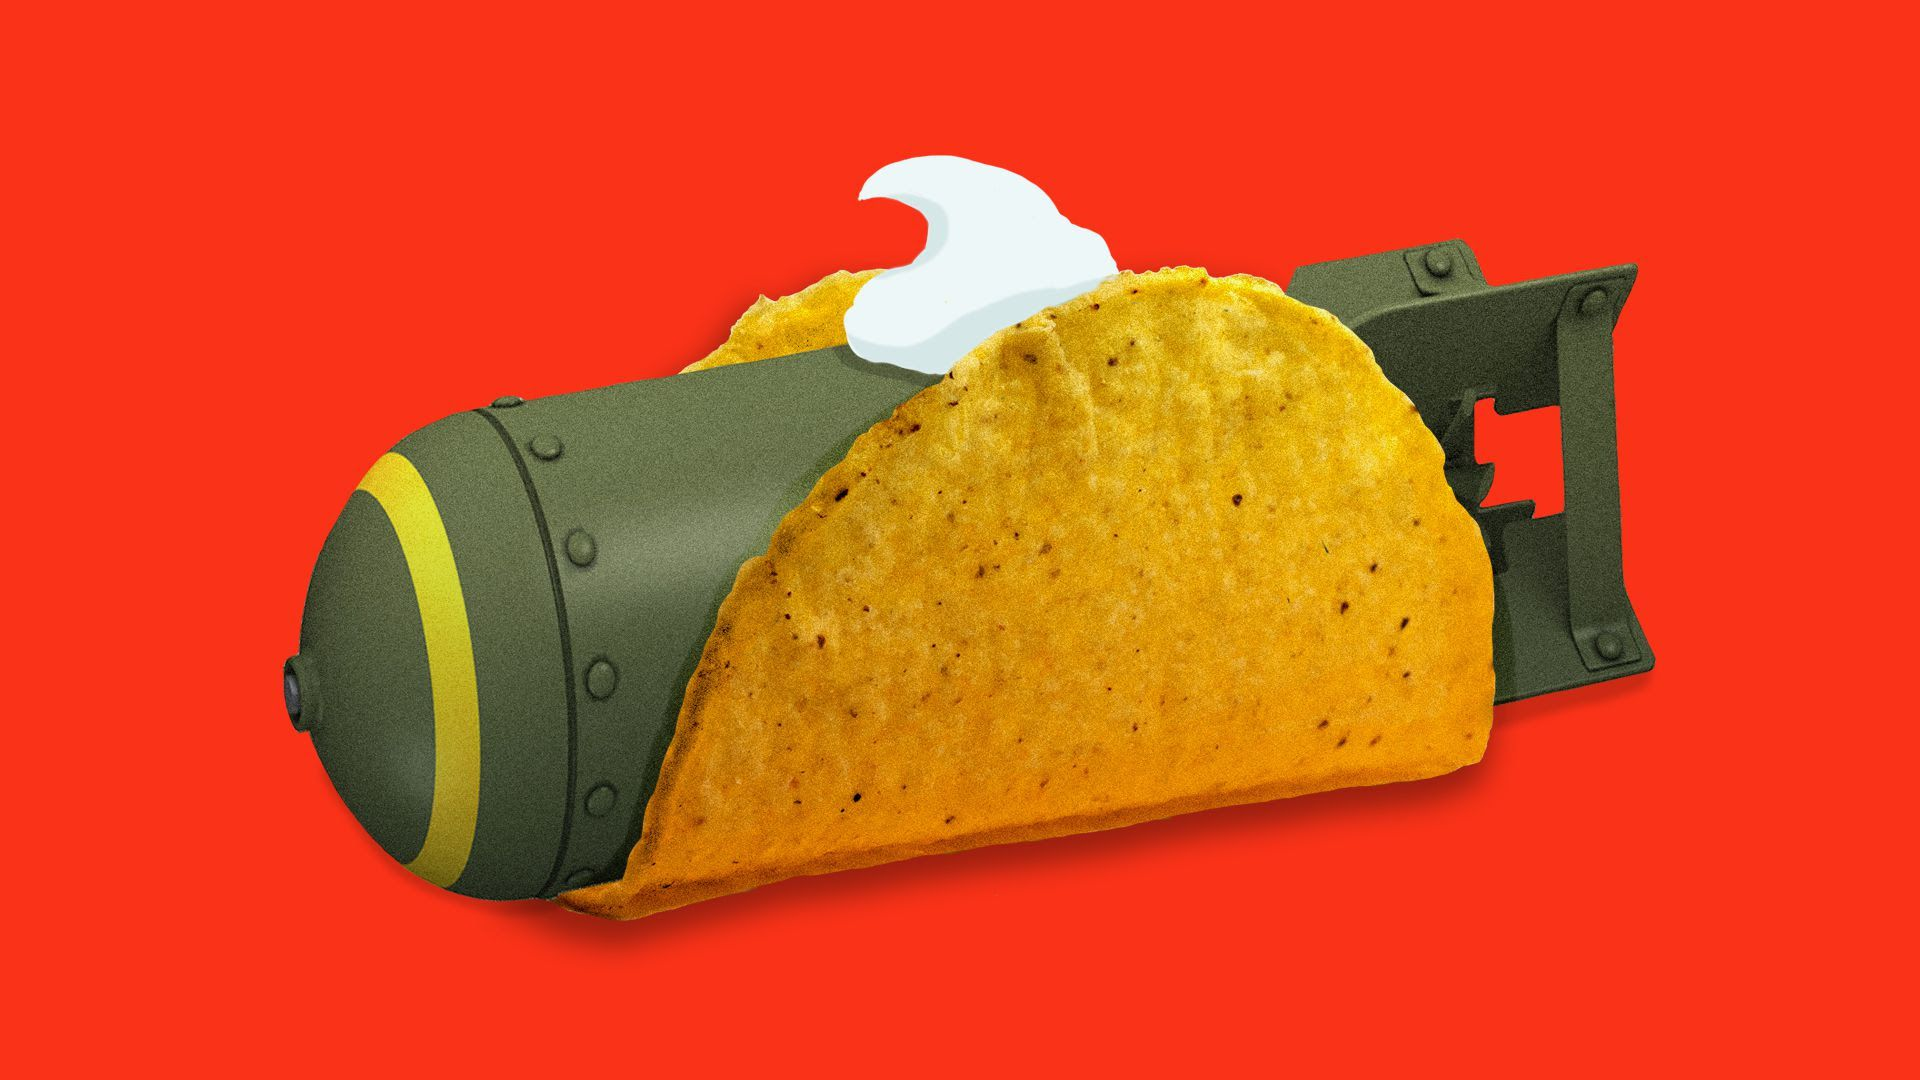 An illustration of a missile in a taco with sour cream on the top